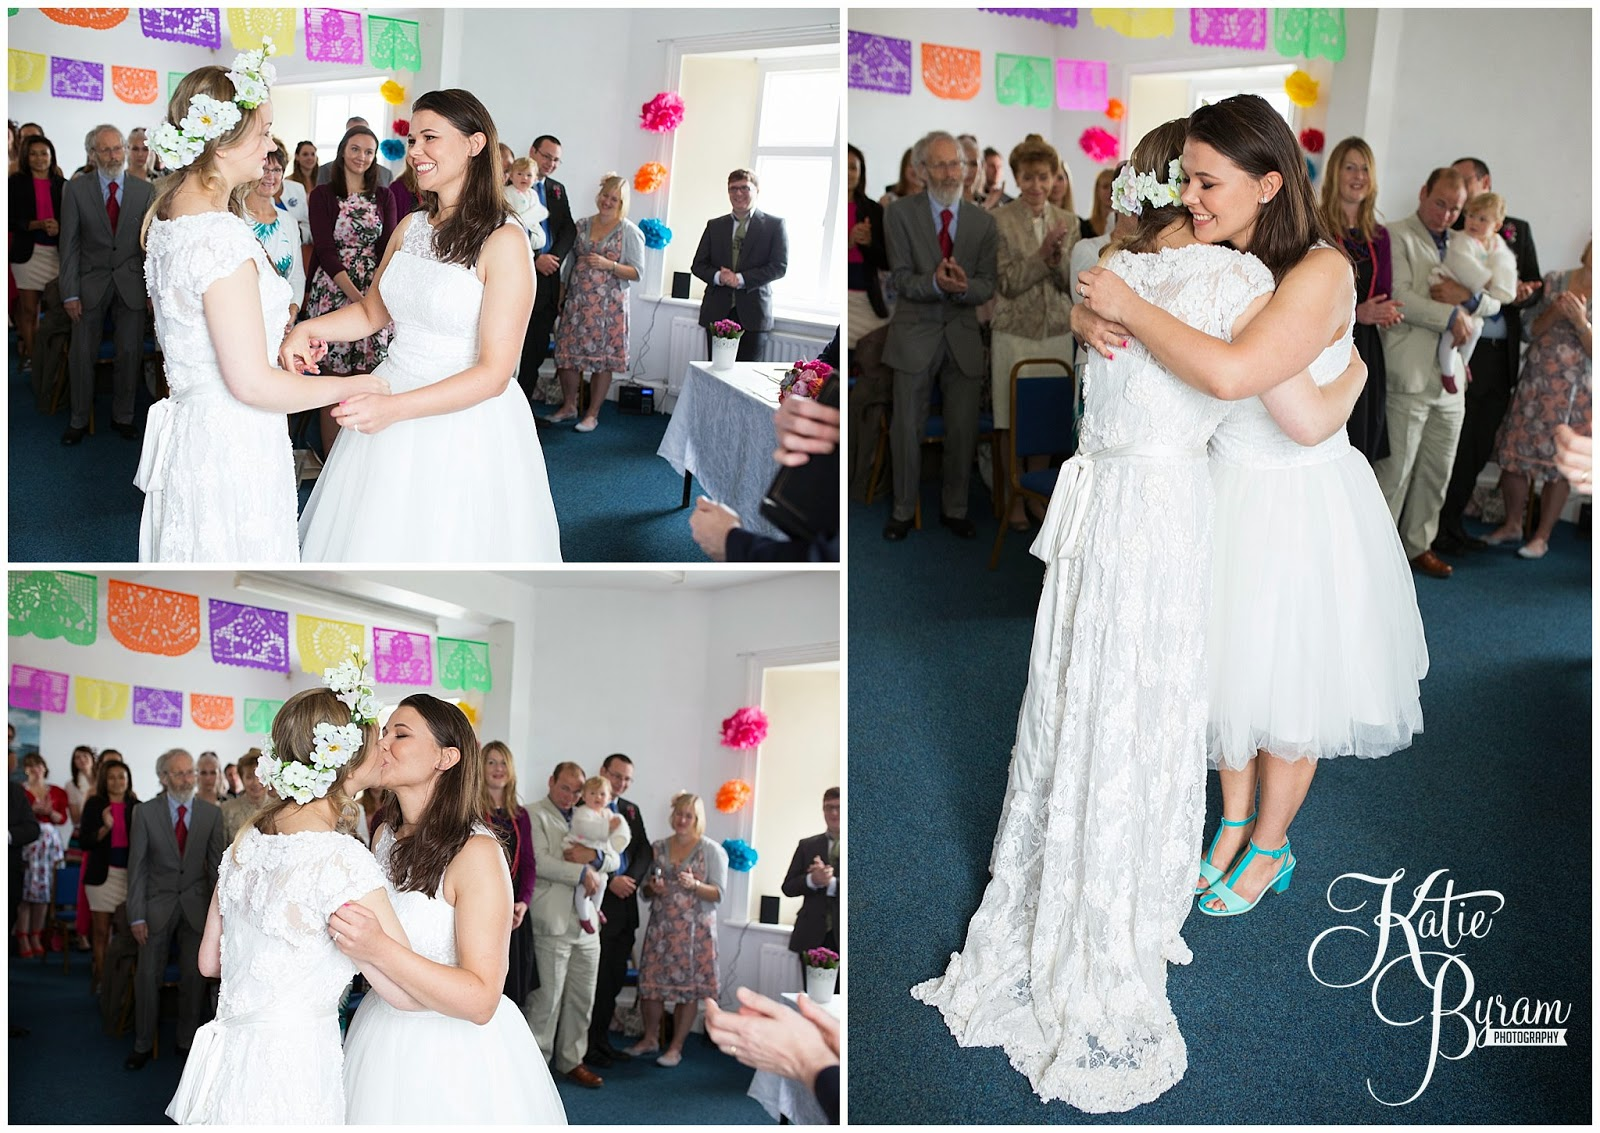 st mary's lighthouse wedding, share the honest love, love my dress blog, katie byram photography